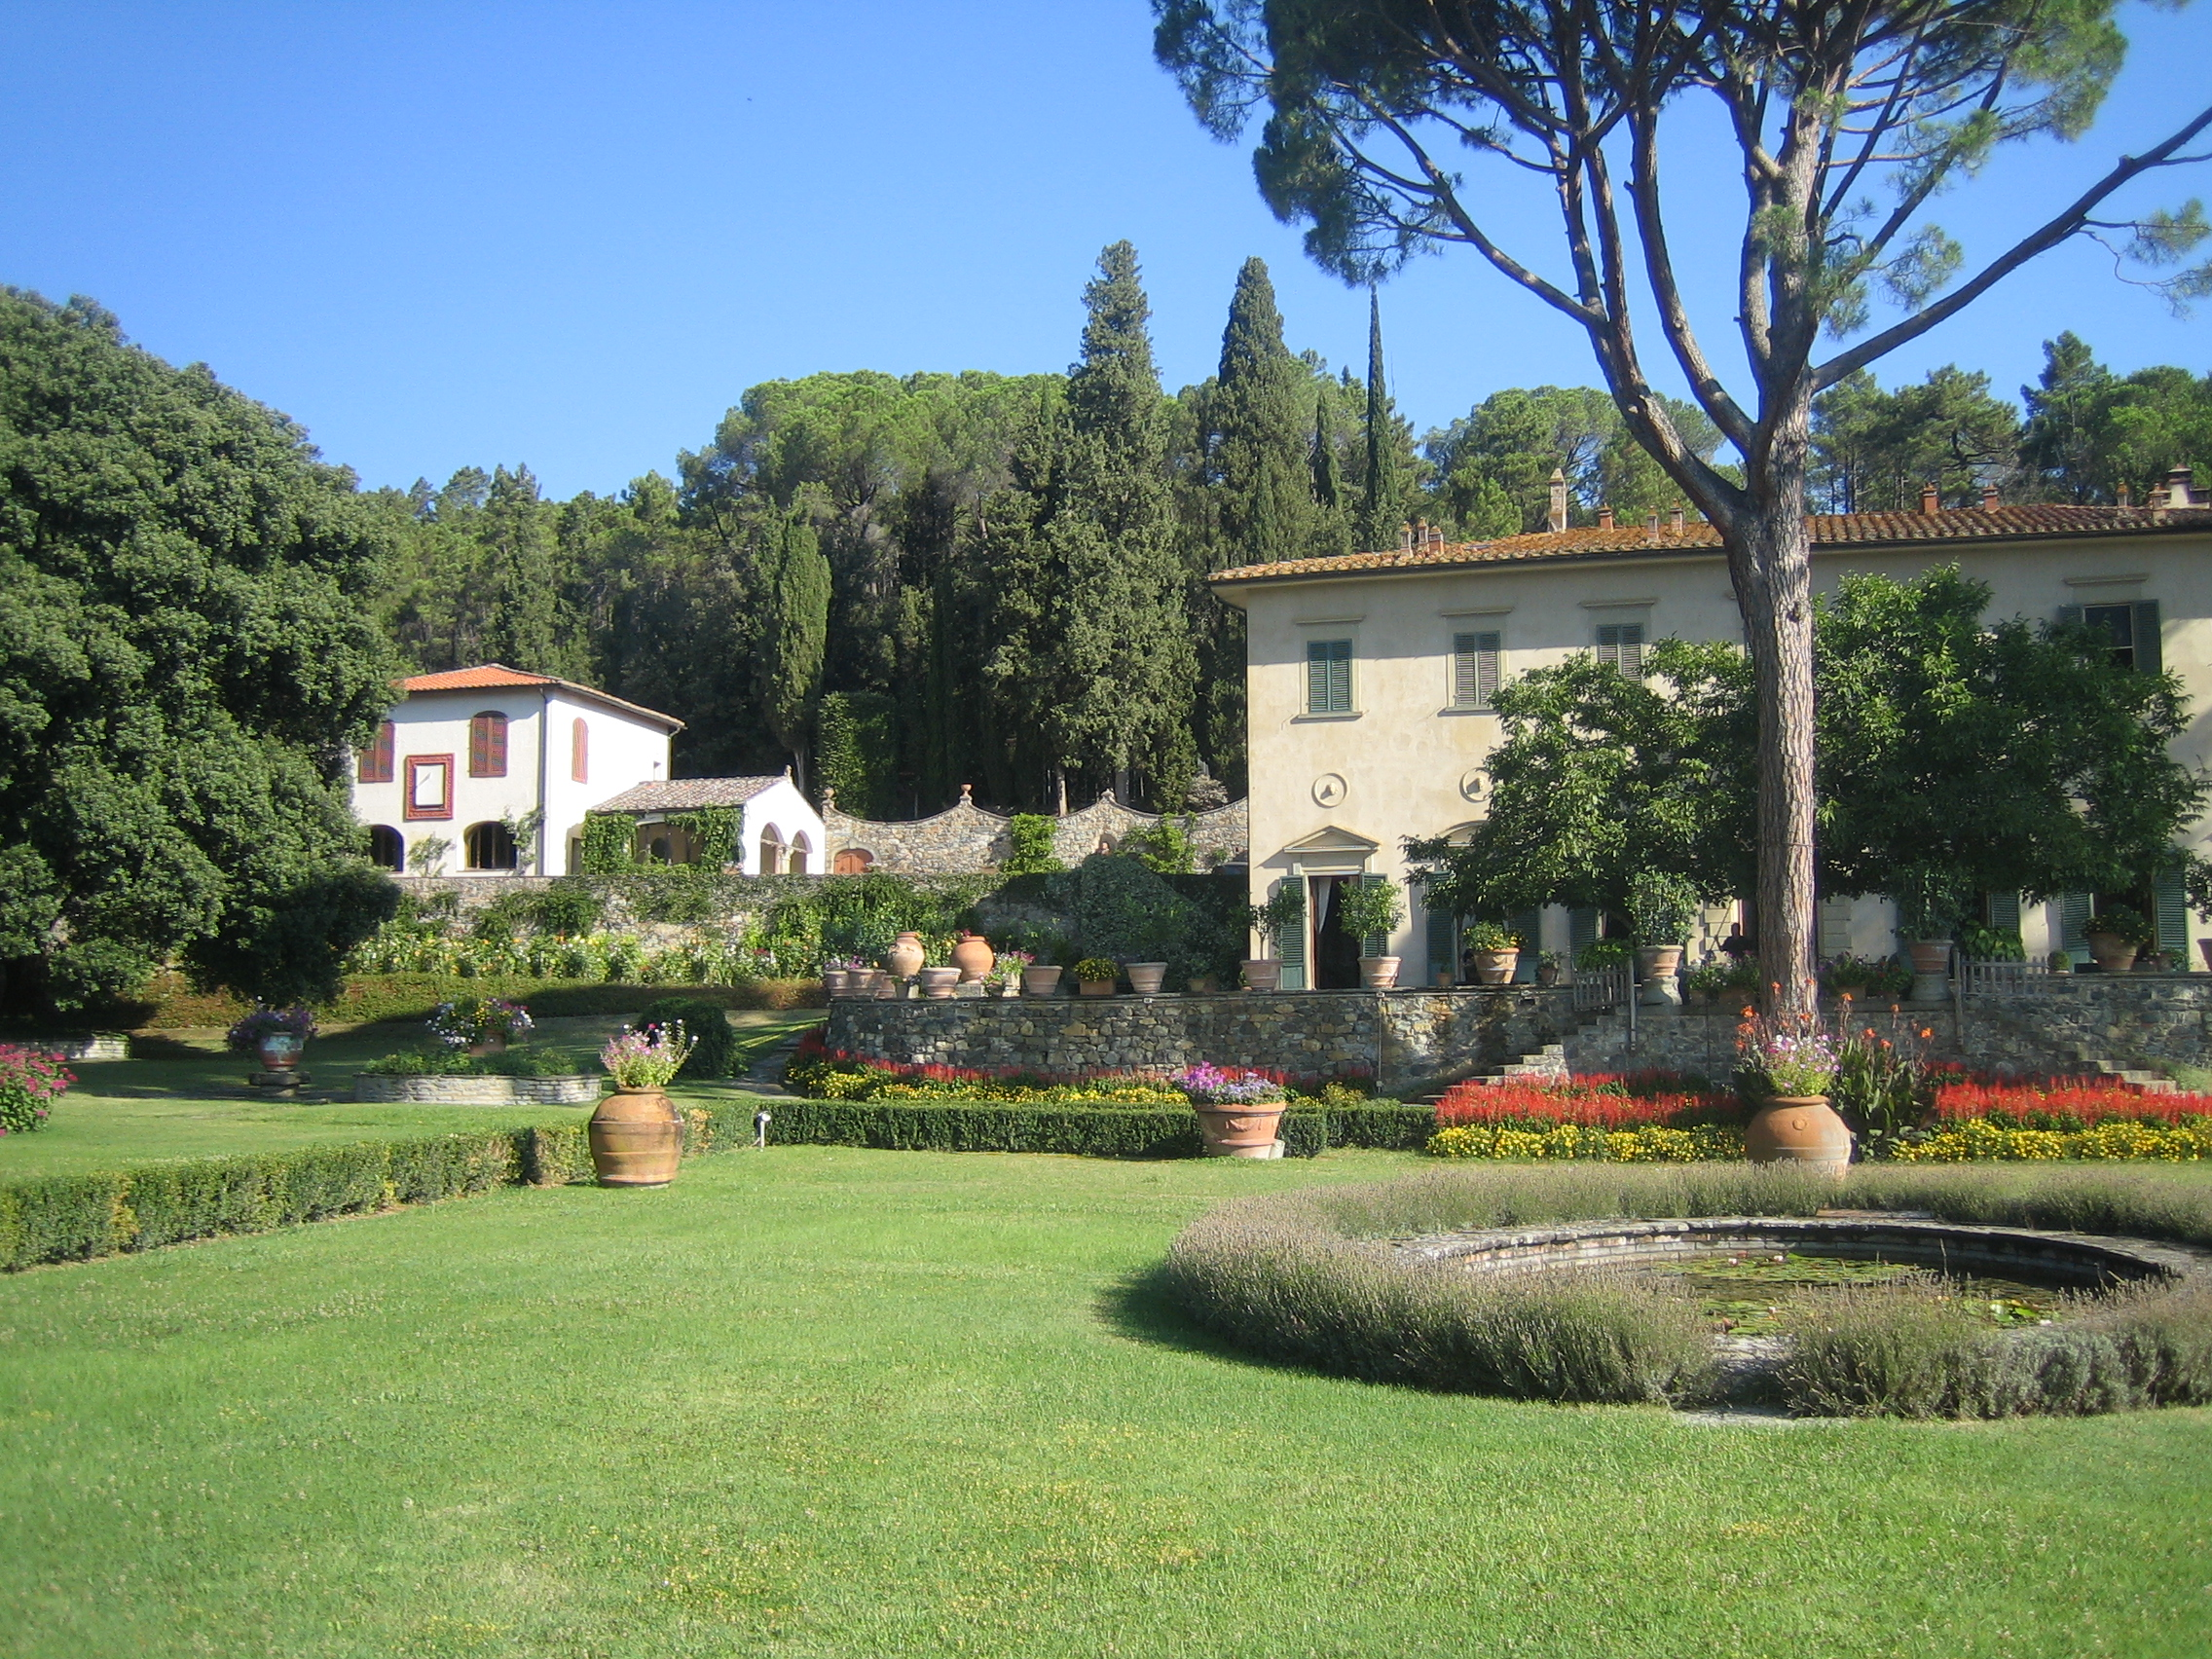 Roman villas in every region for your next Italian holiday